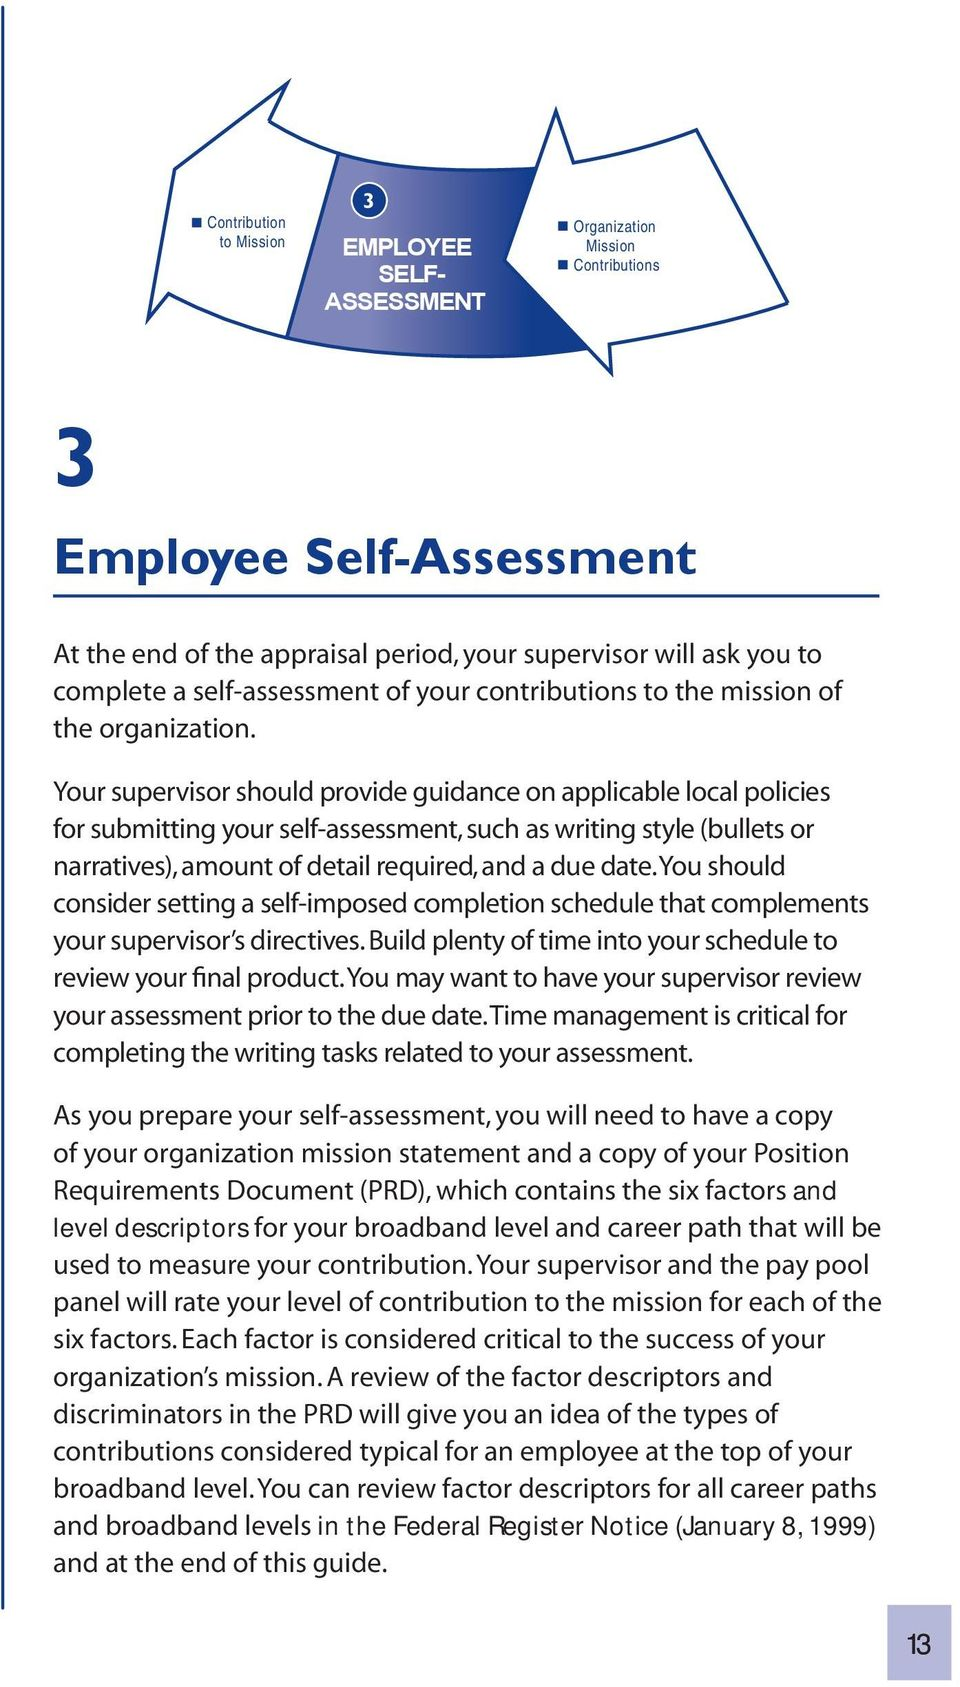 Your Supervisor Should Provide Guidance On Applicable Local Policies For  Submitting Your Self-Assessment,